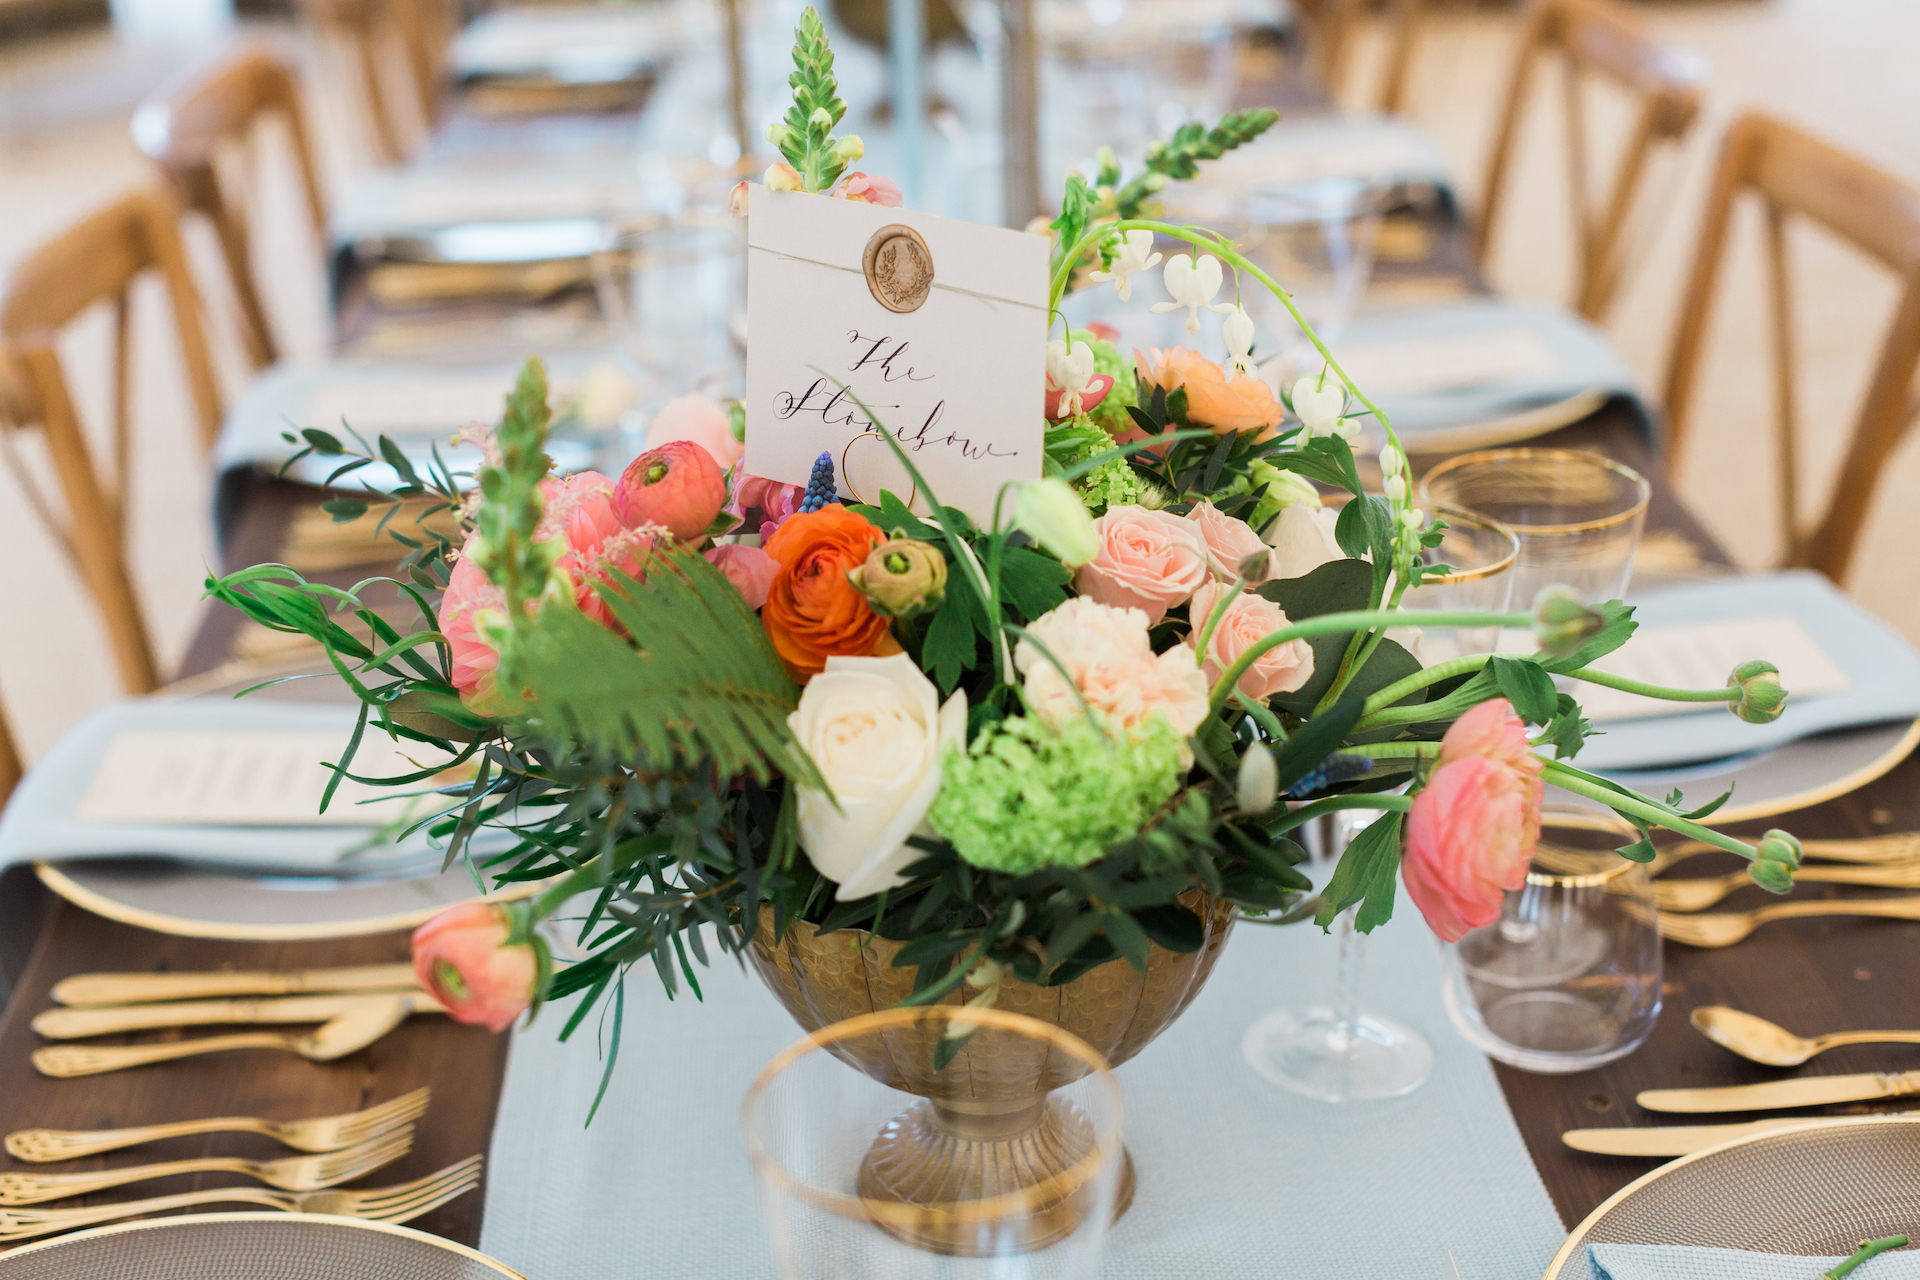 PapaKåta Spring Open Weekend Sperry Tent captured by Lucy Davenport Photography: Floral Centrepiece by Leafy Couture with Gold Crockery by Whitehouse Event Crockery